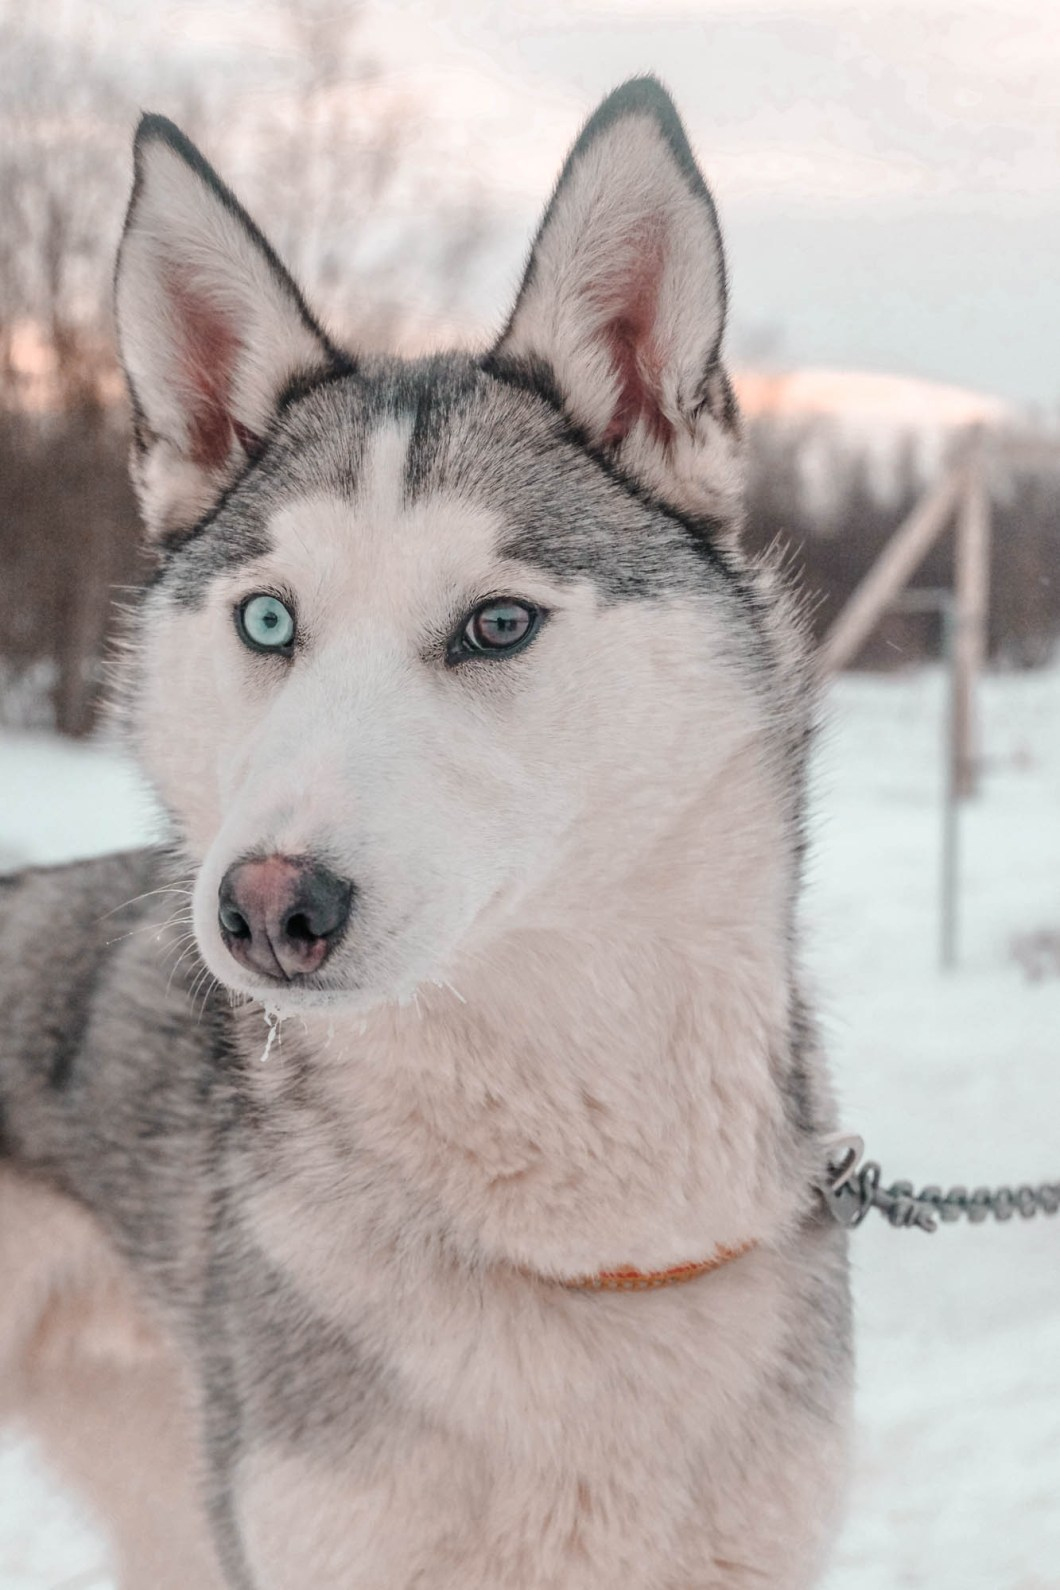 Husky in cold Norway